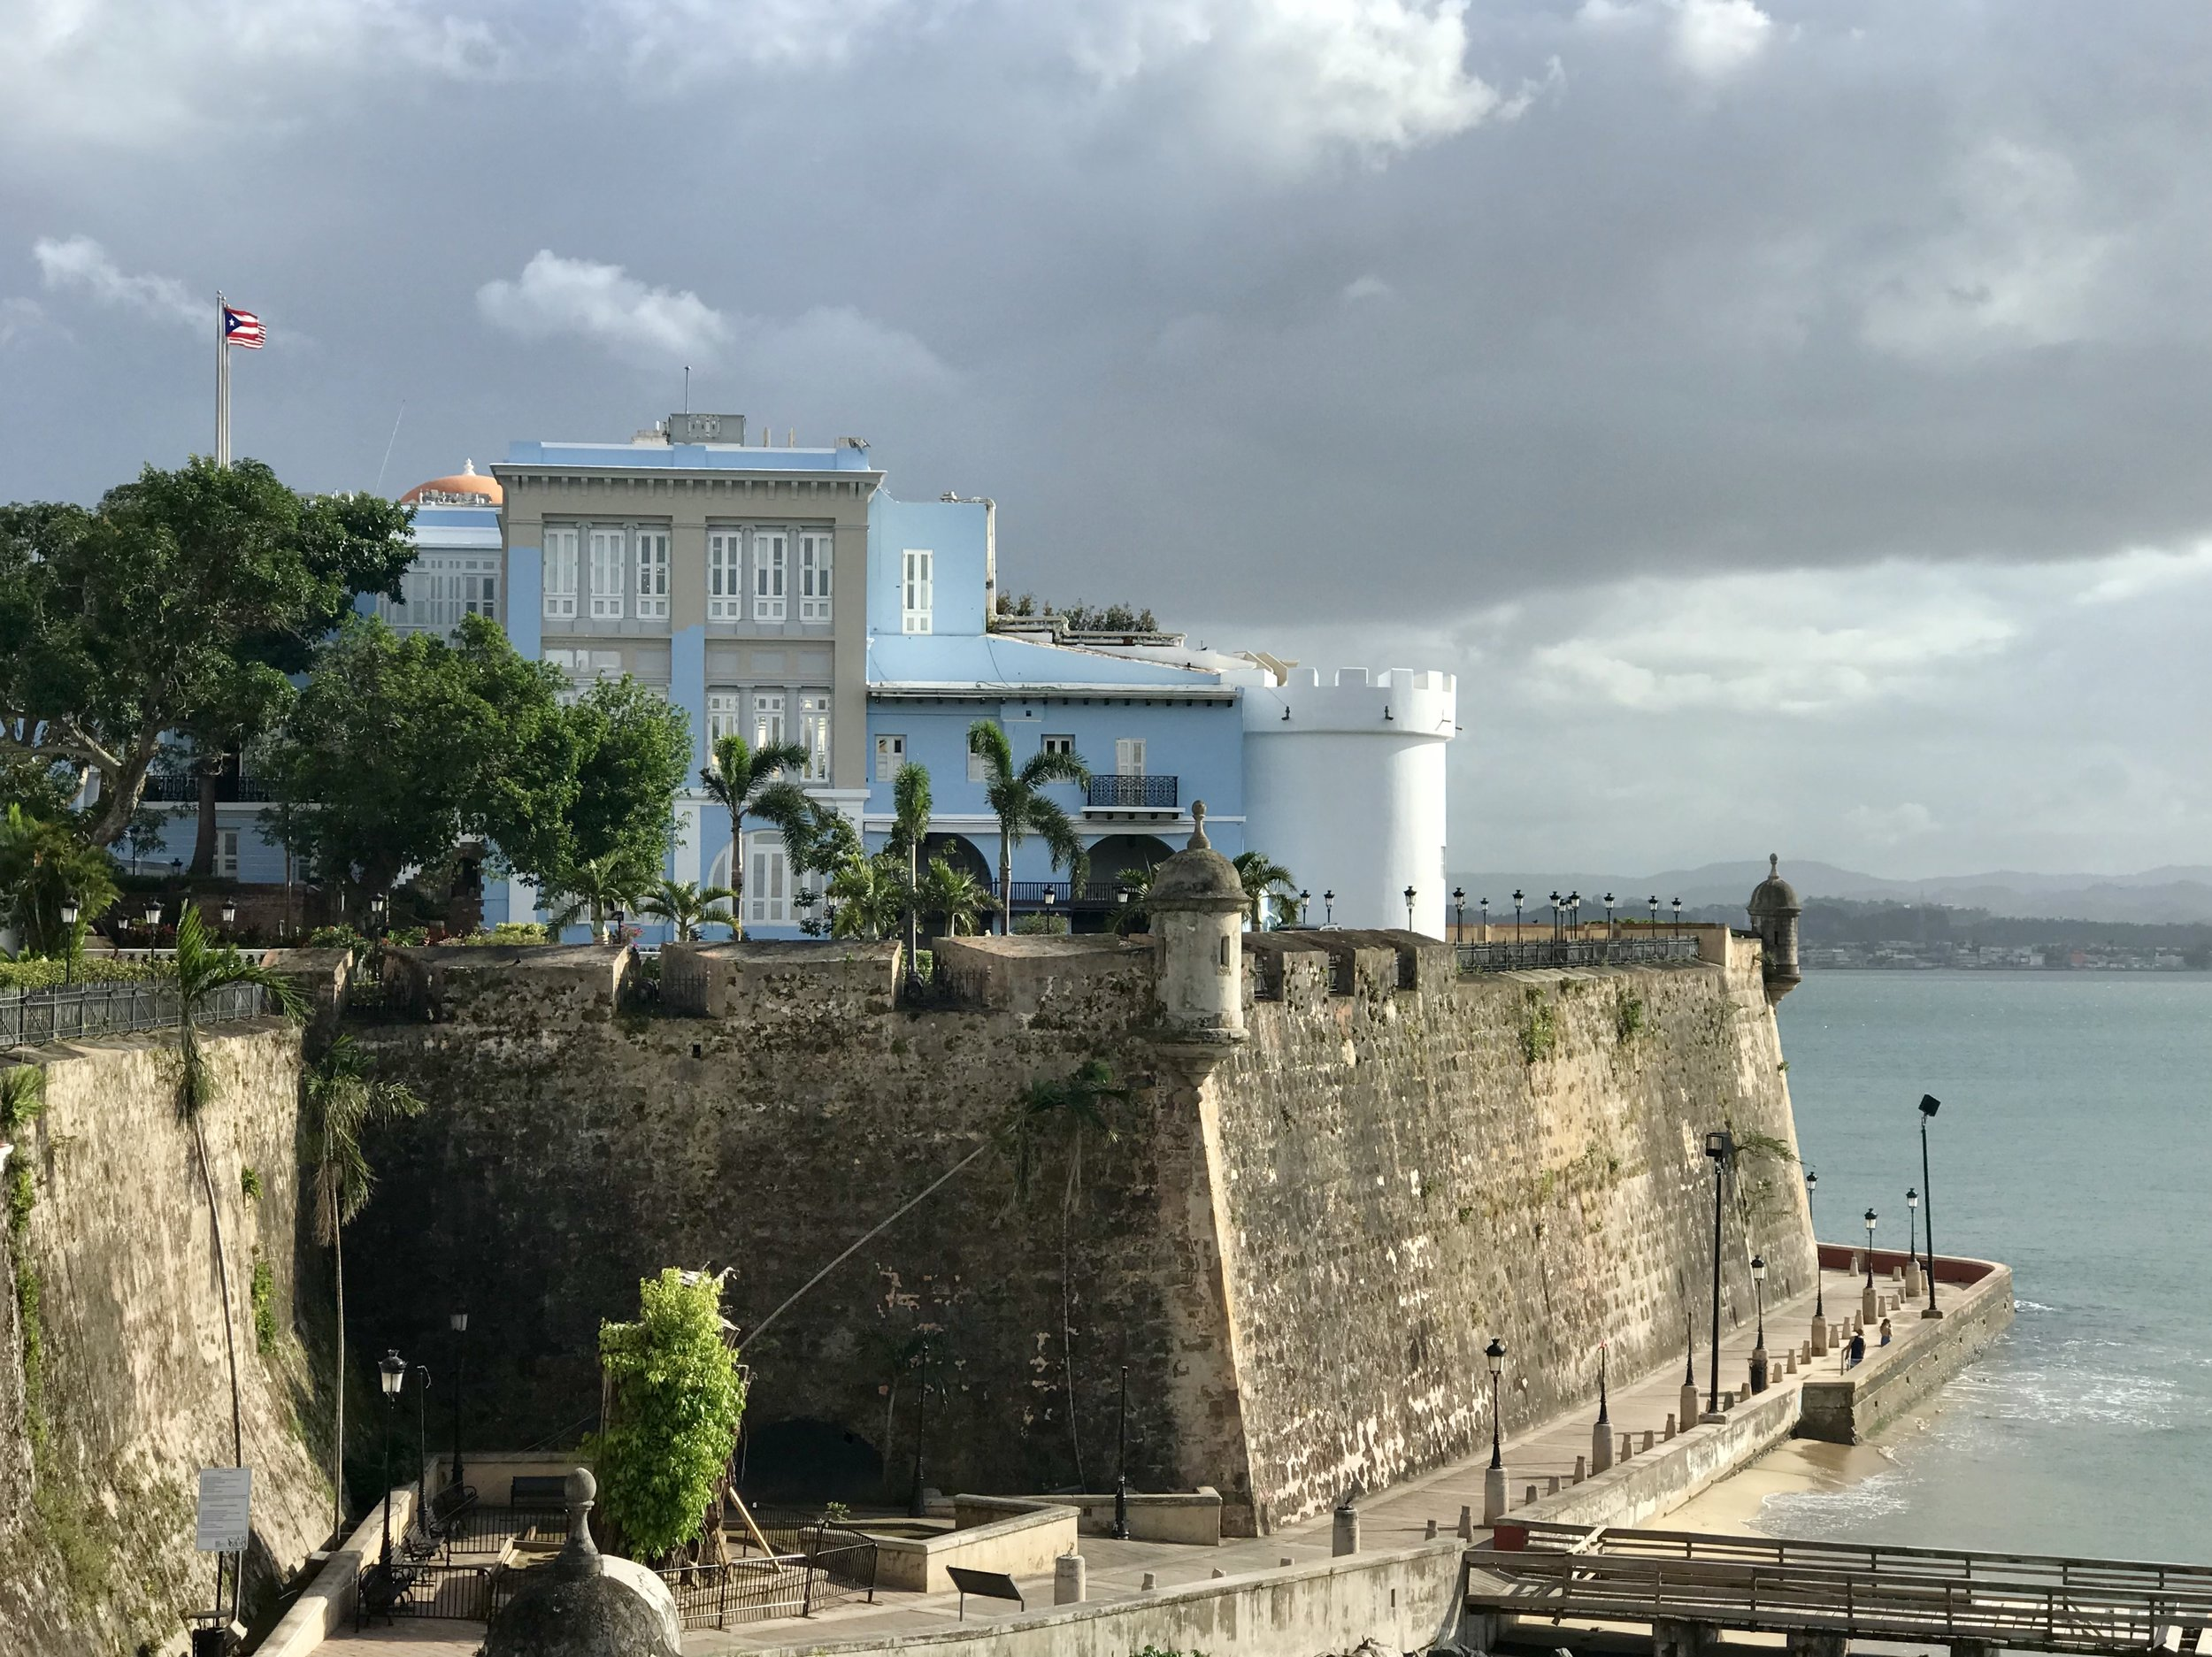 A beautiful day in Old San Juan.